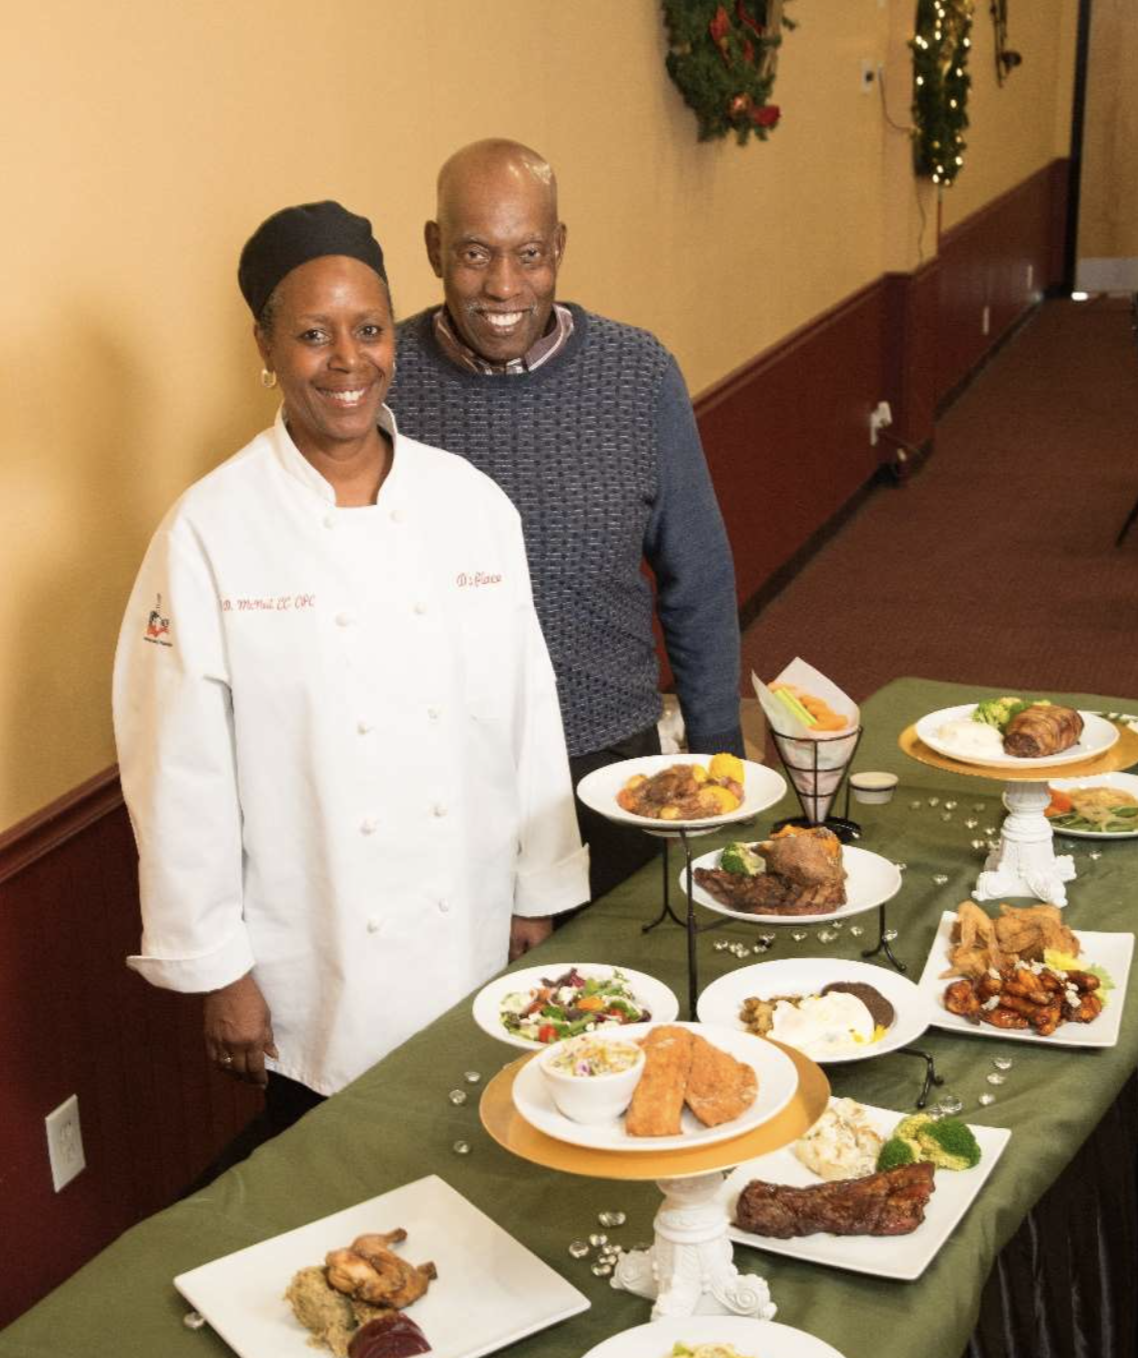 D's mission is to serve our customers and community and be a stable force in the area.  We hope to bring people together to celebrate all occasions. - D's Place Banquet, Catering and Hall Rental is located in the business district of Jennings, Missouri. Our doors opened in March 2016 for business. We are an all occasion banquet facility, featuring the abilities to host meetings, weddings, parties and repasts. For catering, we have a commercial kitchen with a full time chef. D's Place can do both onsite and offsite catering for your function. We can easily seat 102 people in our building.